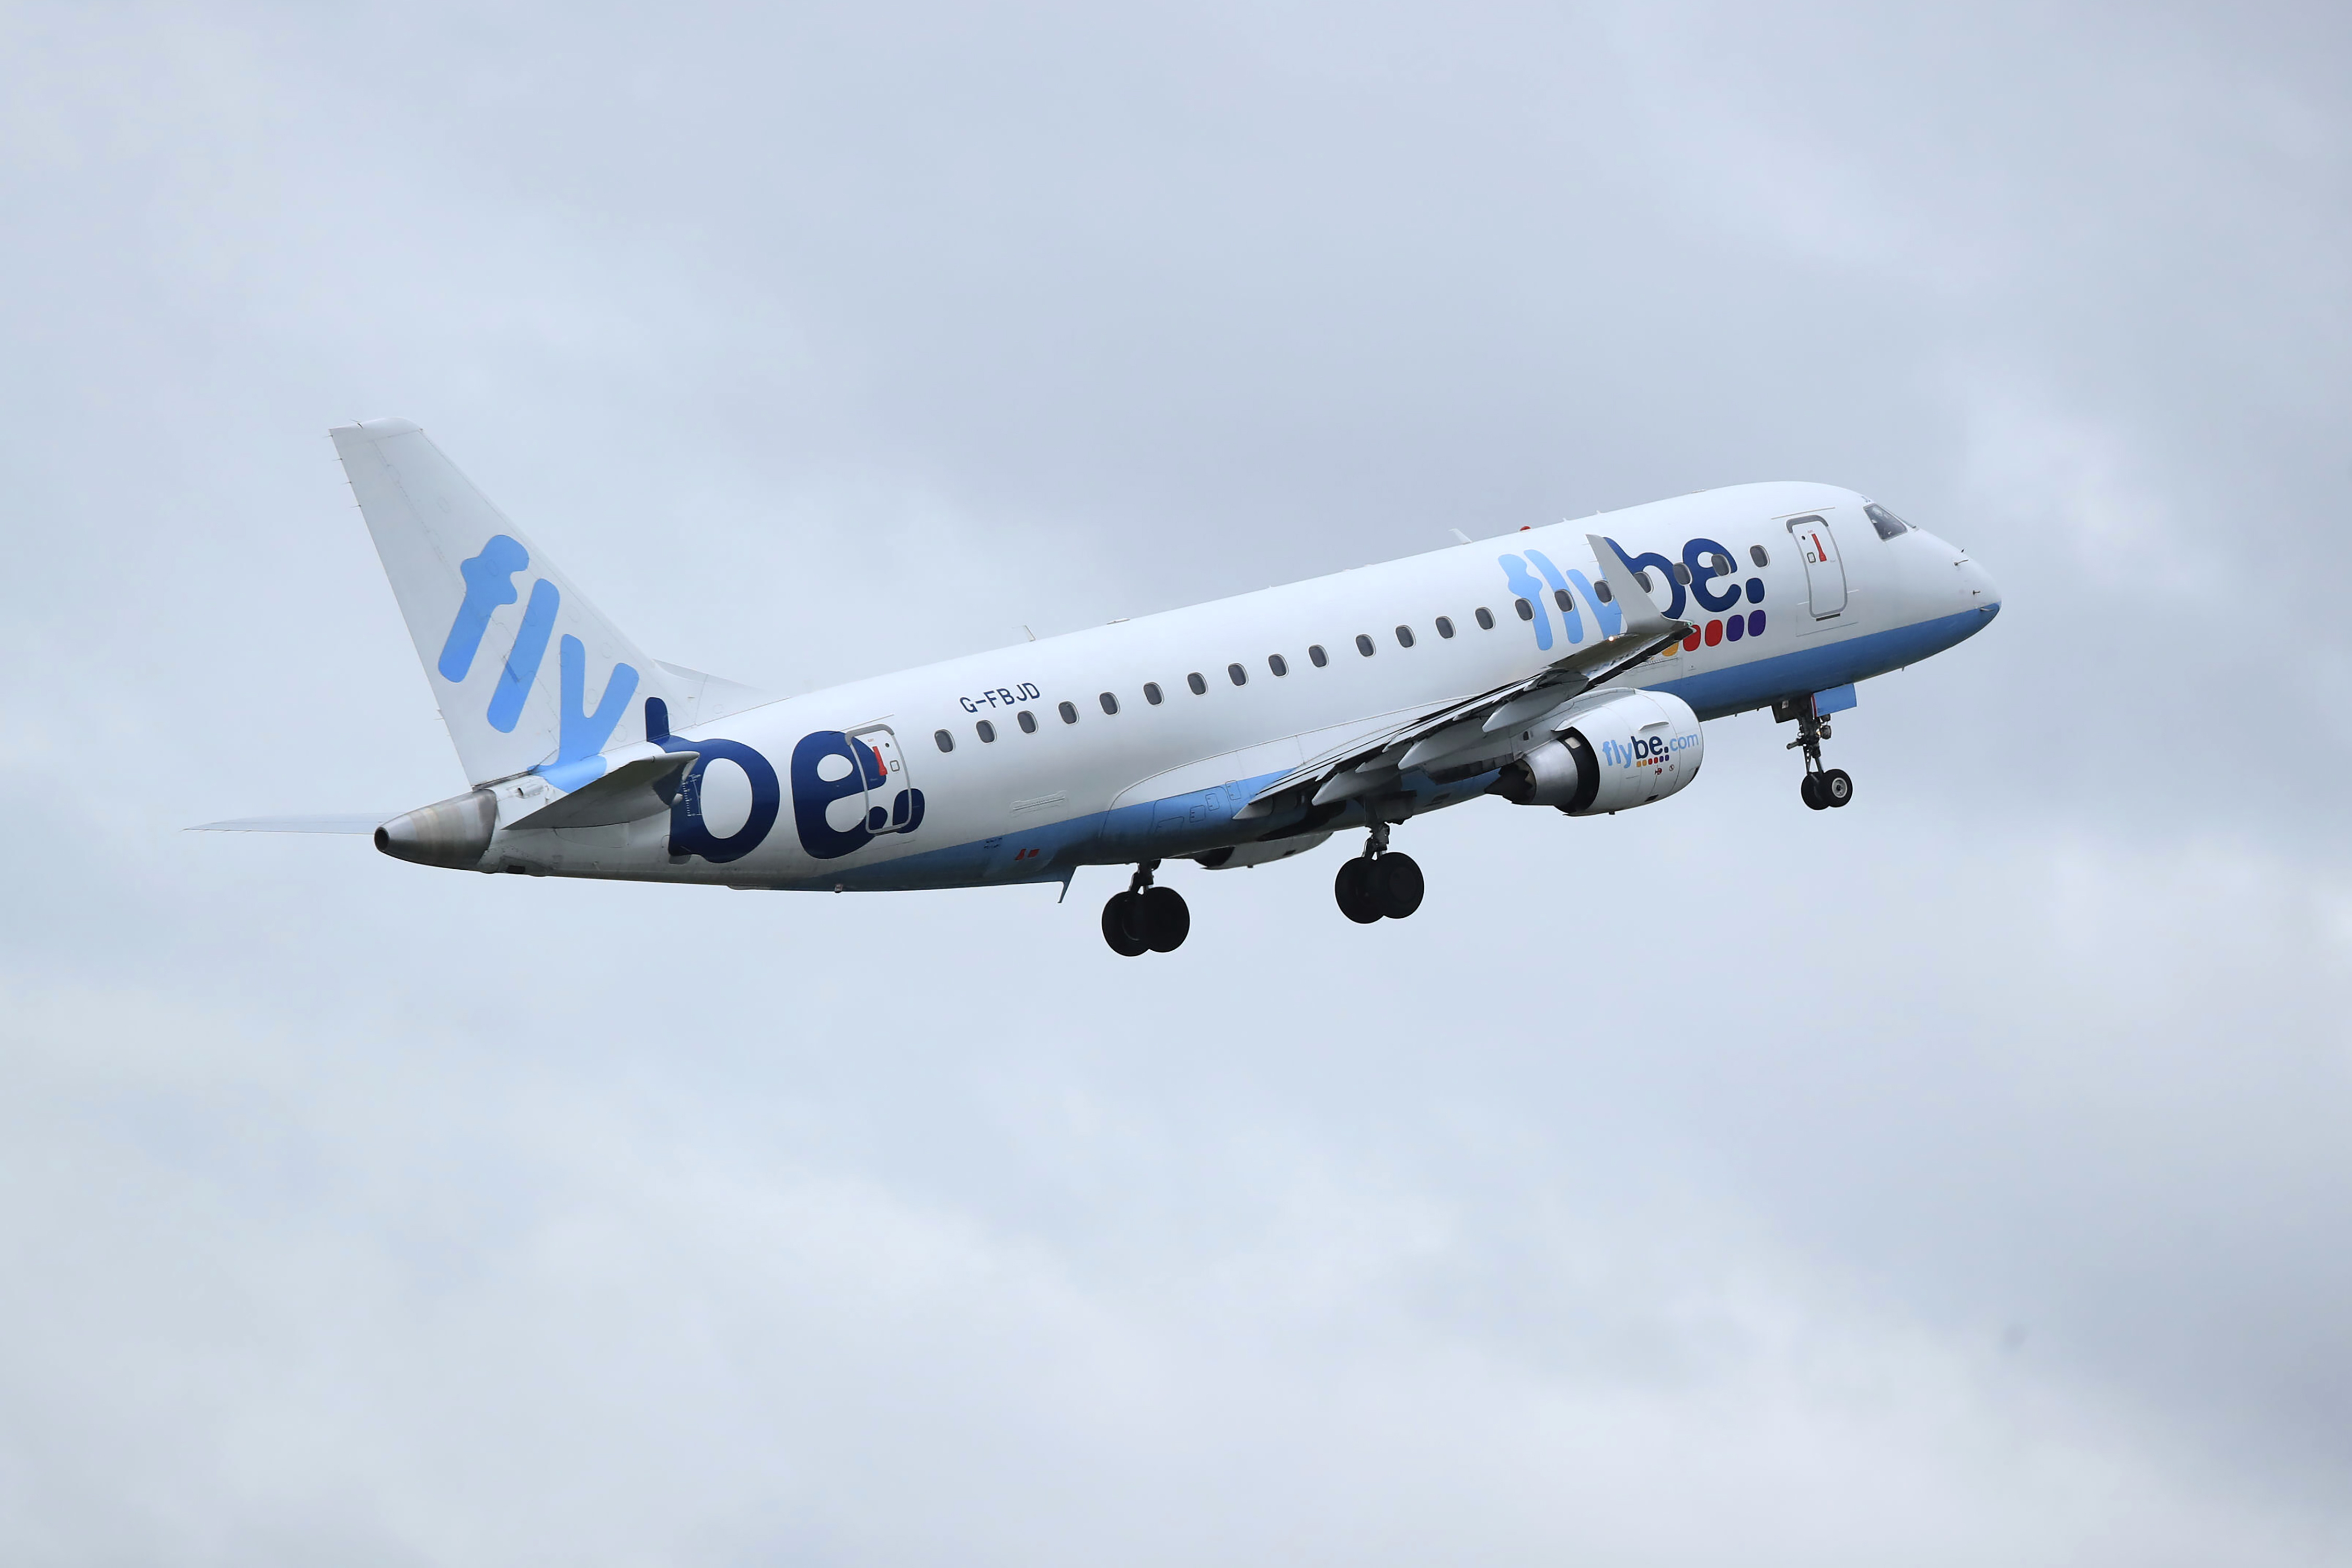 This Jan. 13, 2020, photo shows a Flybe flight departing from Manchester airport.